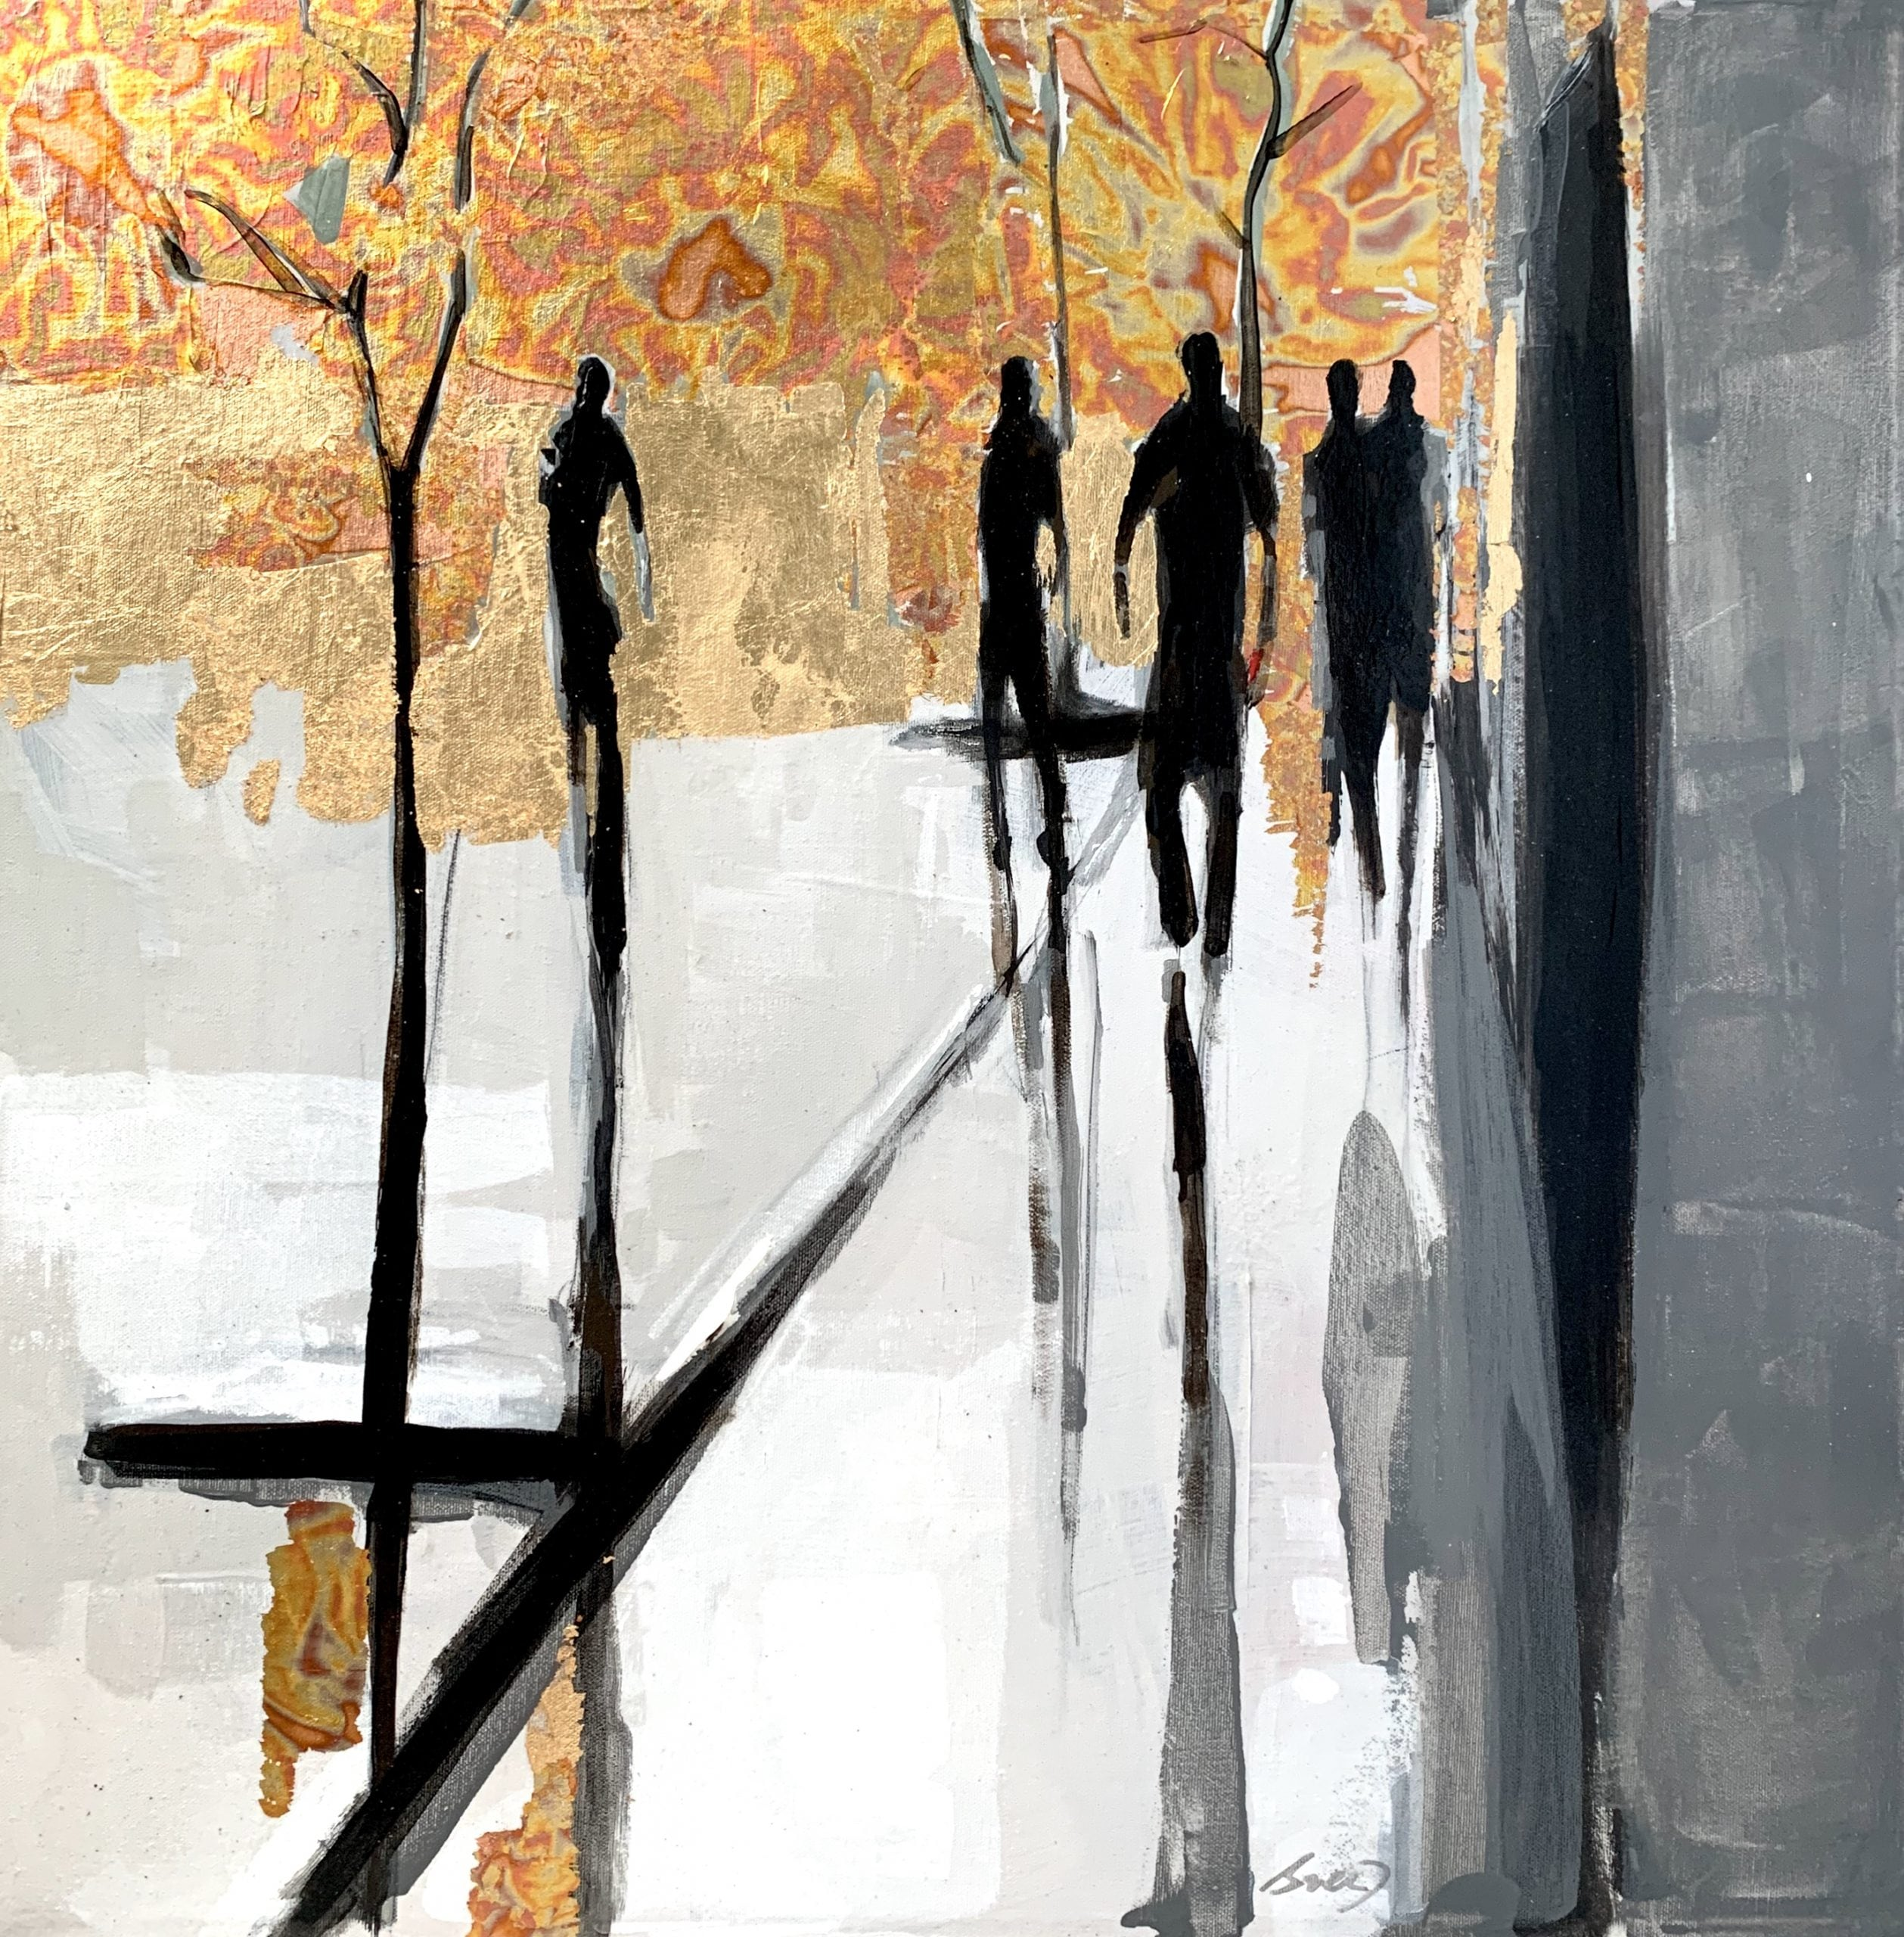 L'écho, mixed media cityscape painting by Marie-France Boisvert | Effusion Art Gallery + Glass Studio, Invermere BC